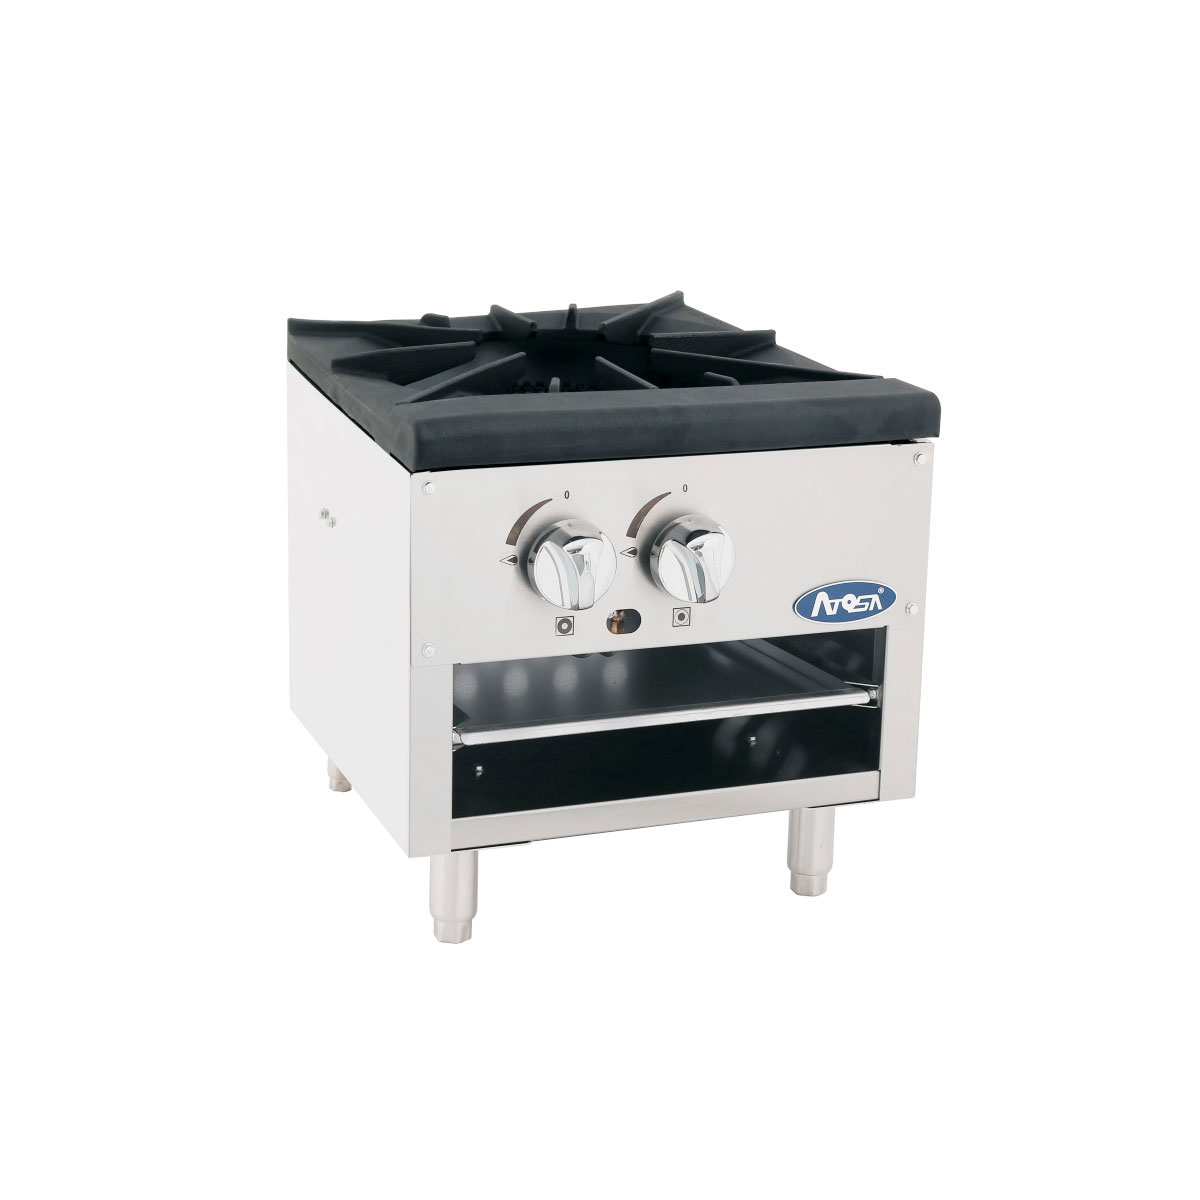 Atosa USA ATSP-18-1L range, stock pot, gas